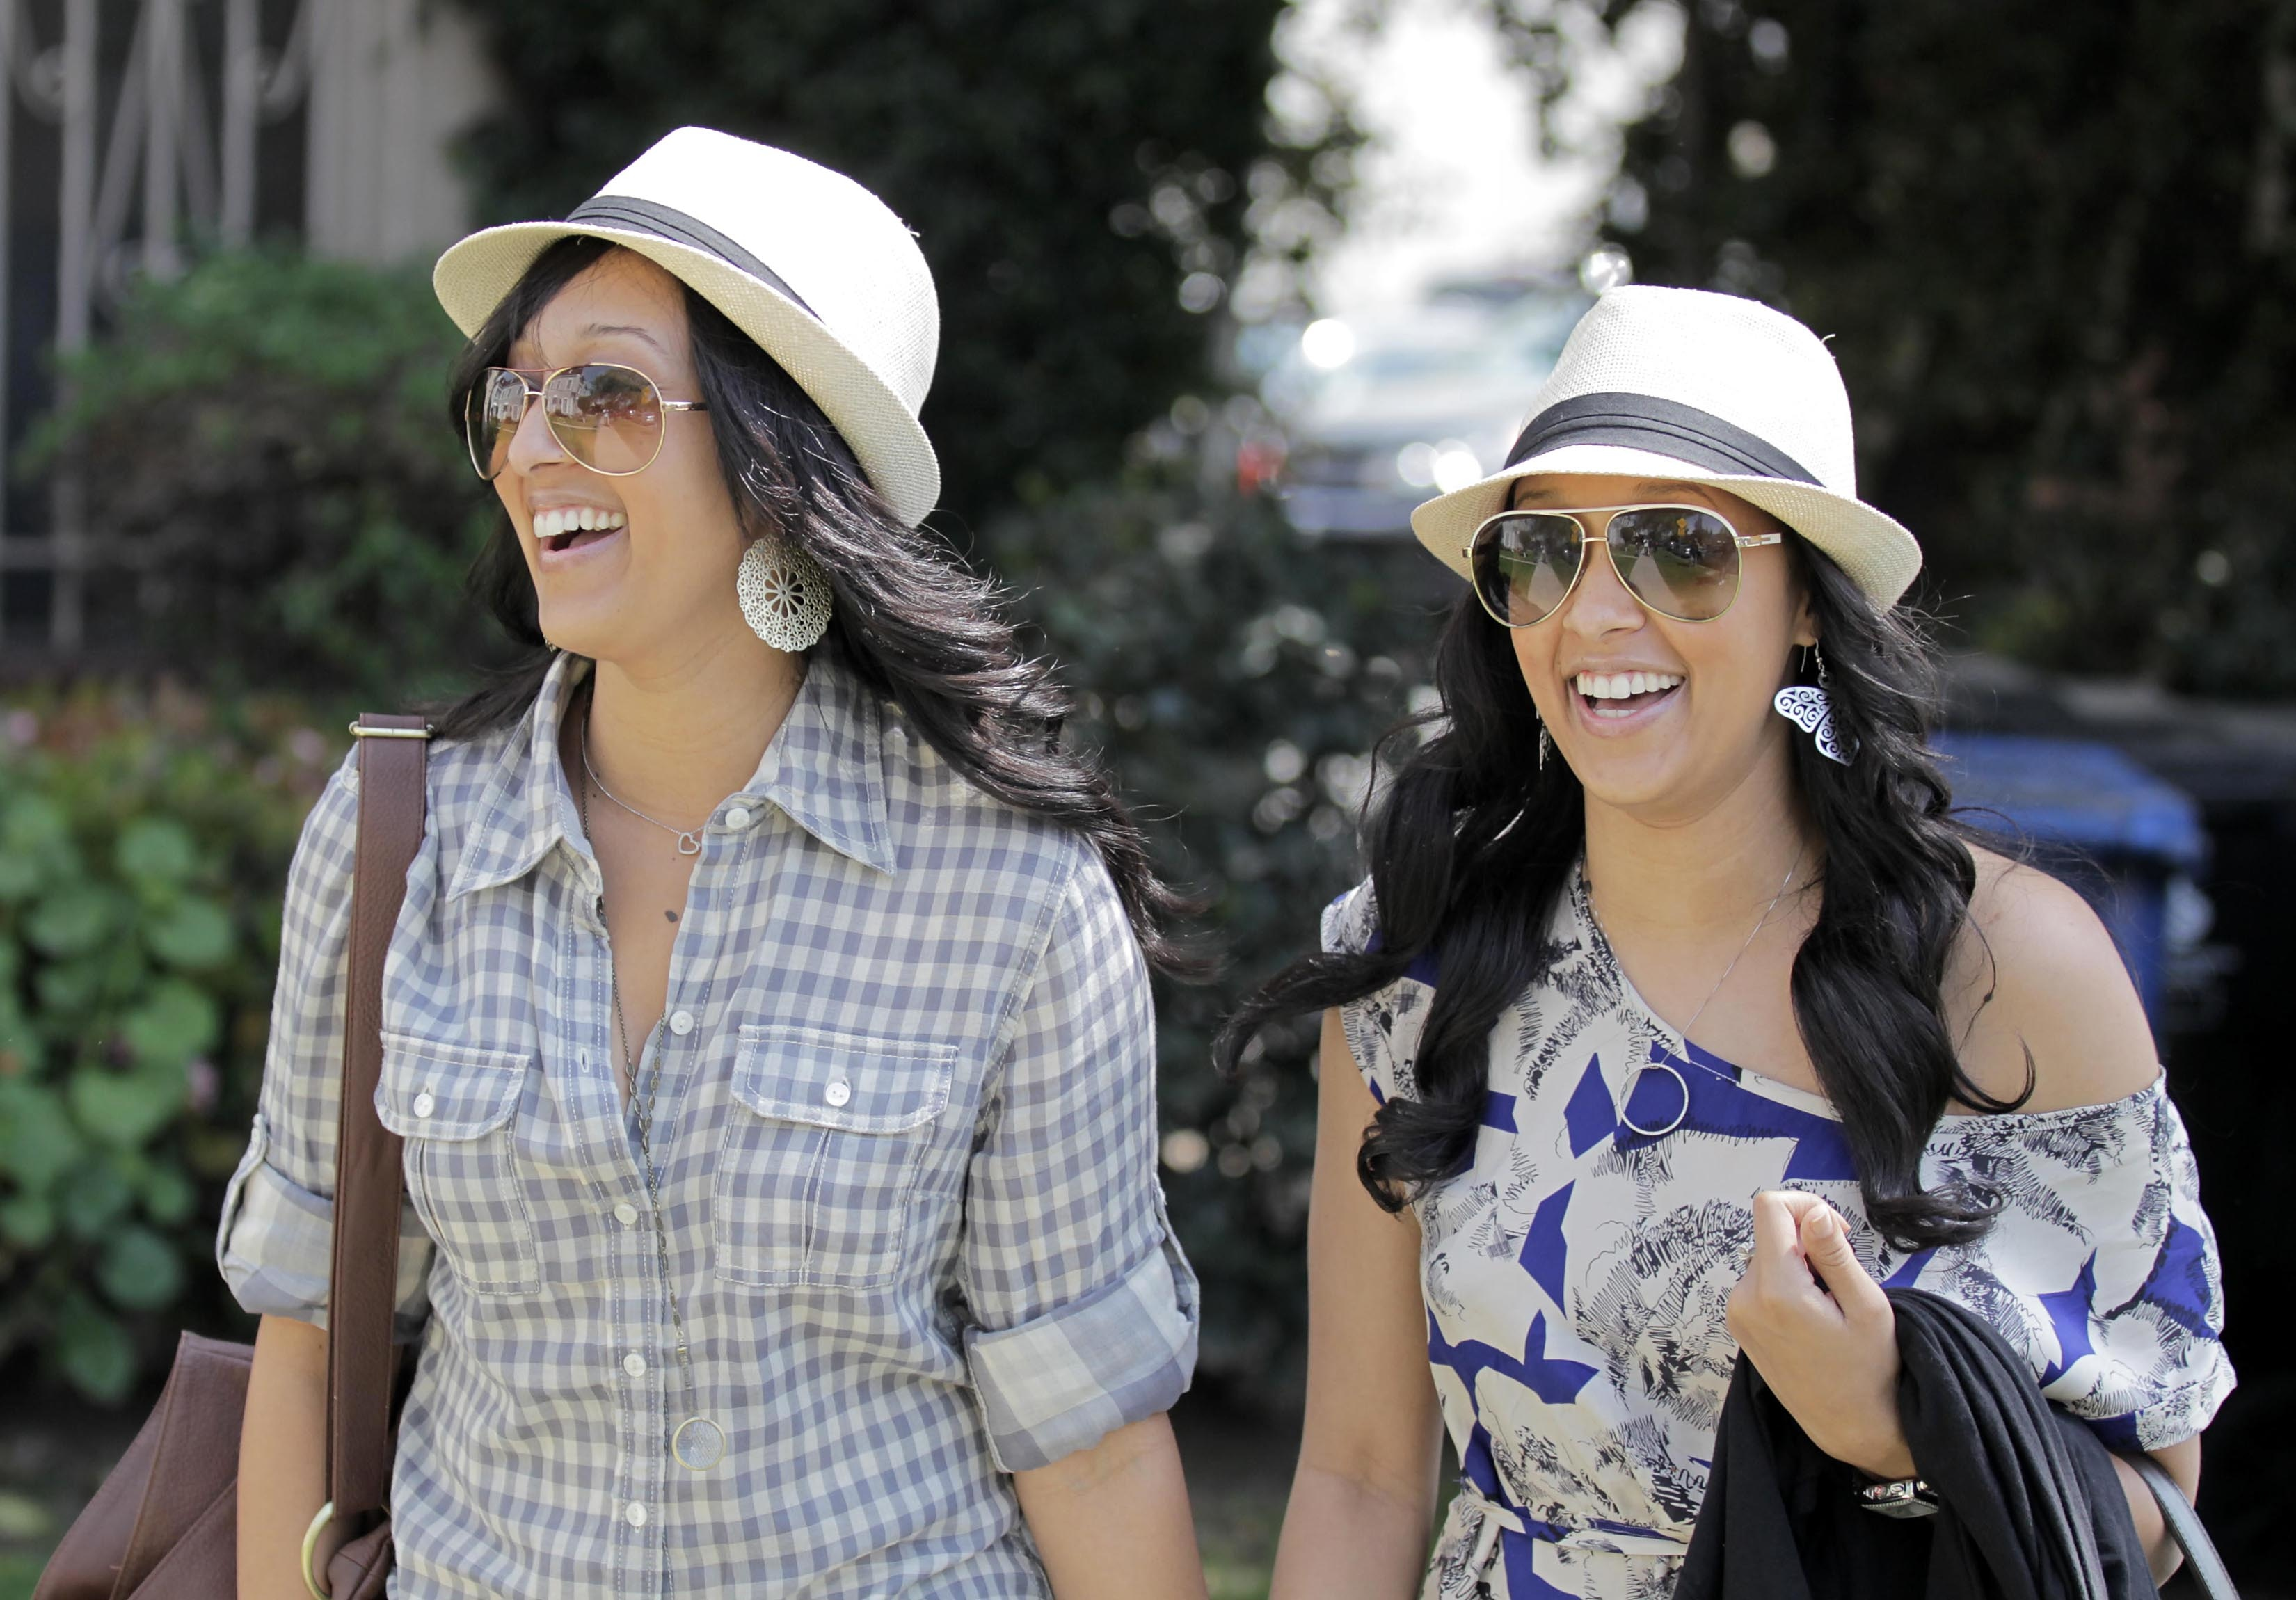 TIA AND TAMERA MOWRY SMILING AND HOLDING HANDS